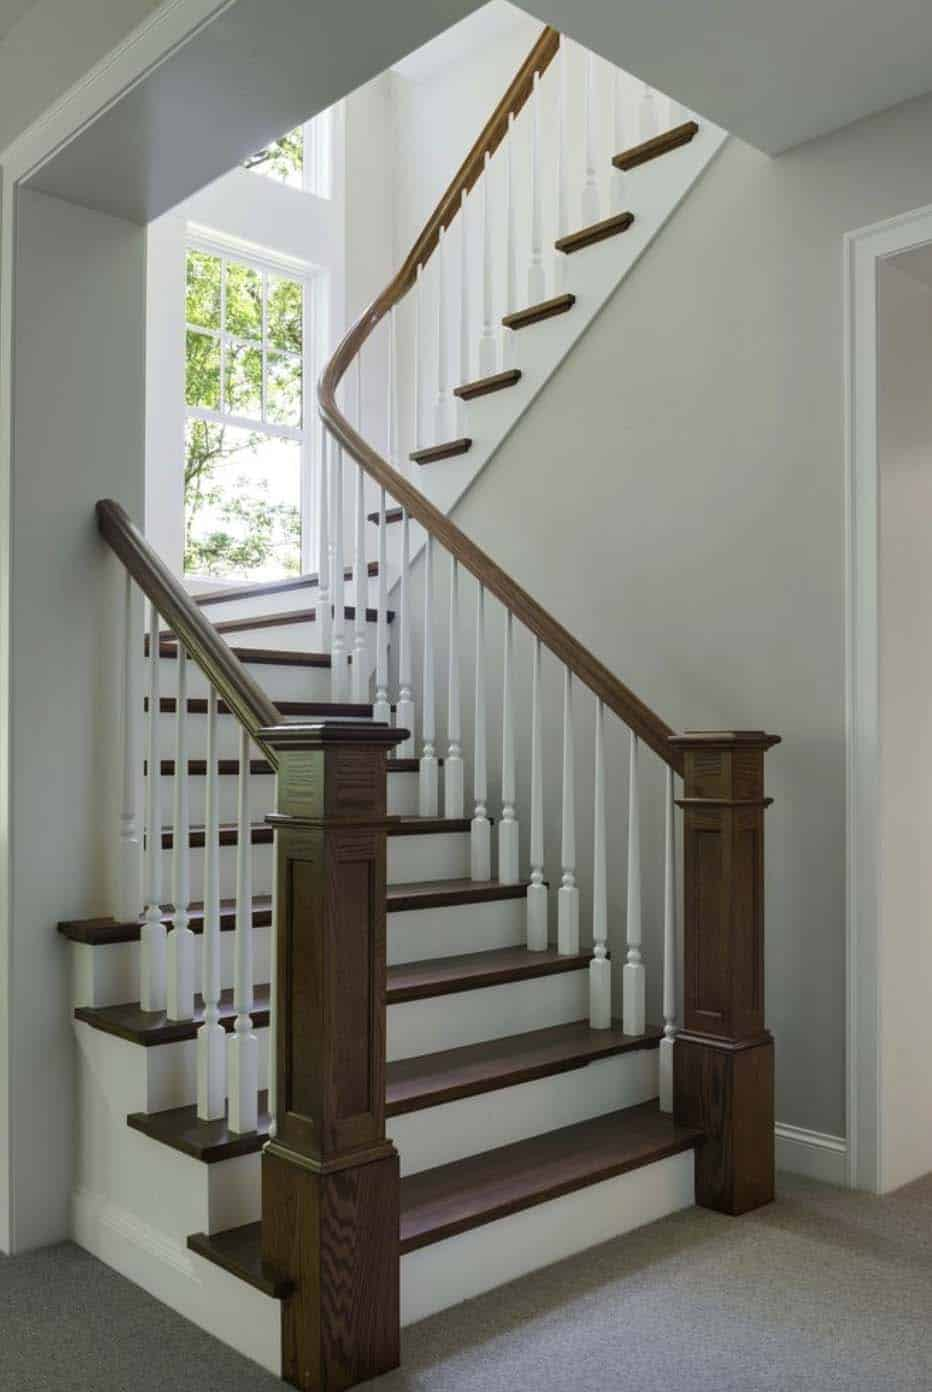 midwest-home-luxury-tour-plage-escalier-style